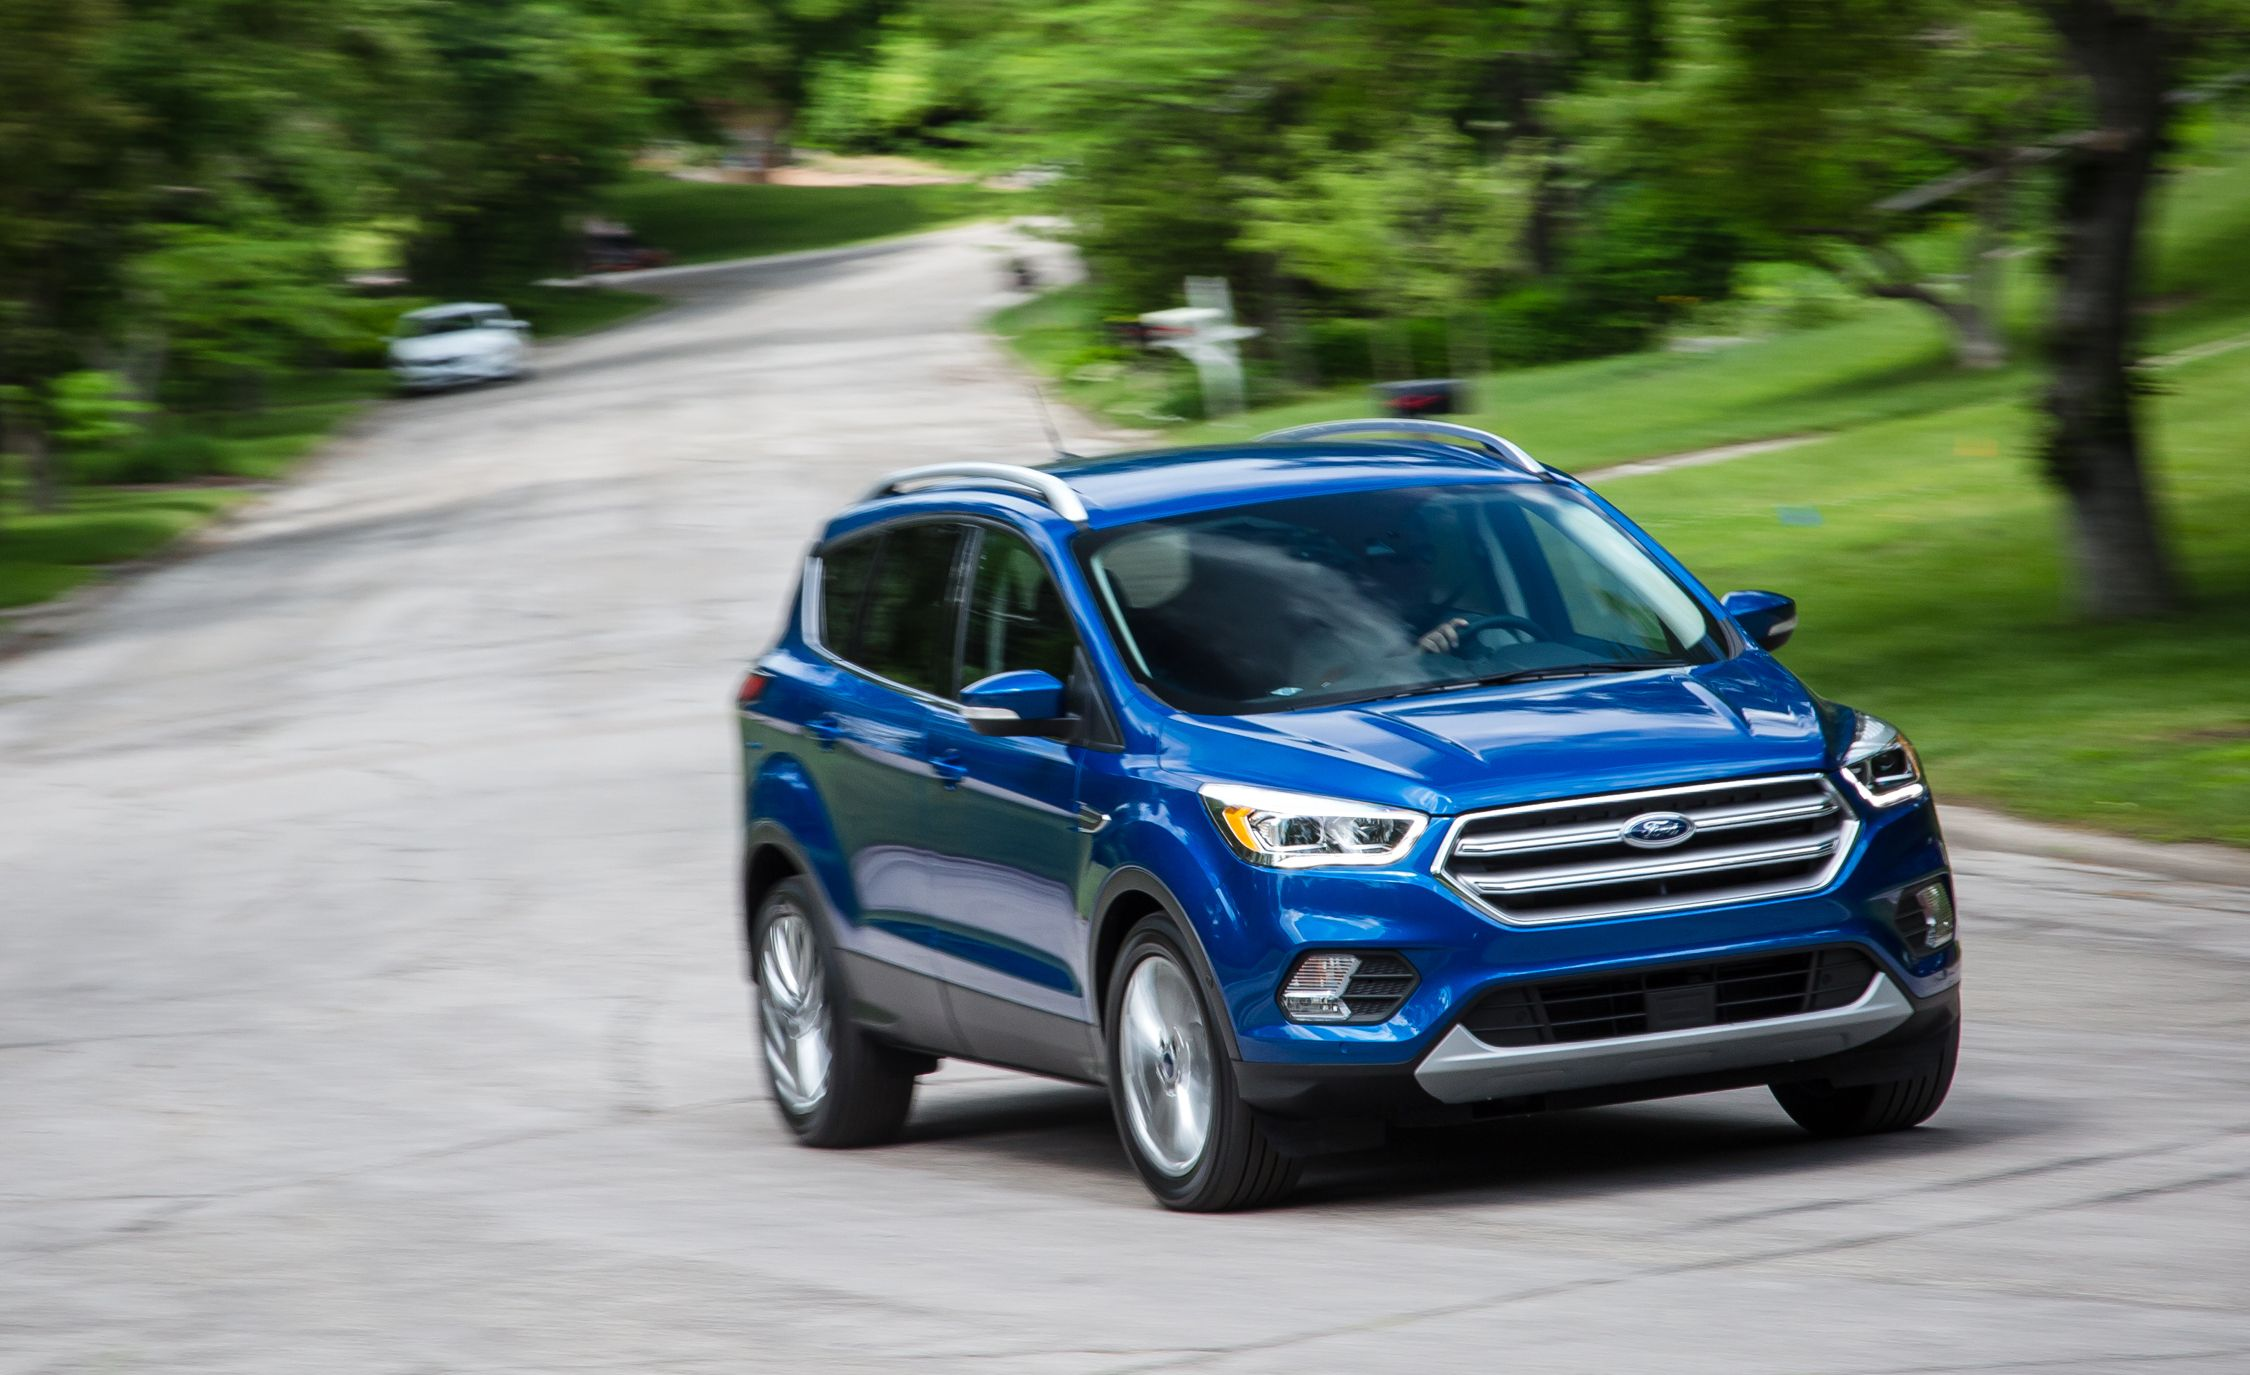 2017 ford escape performance and driving impressions review car and driver. Black Bedroom Furniture Sets. Home Design Ideas